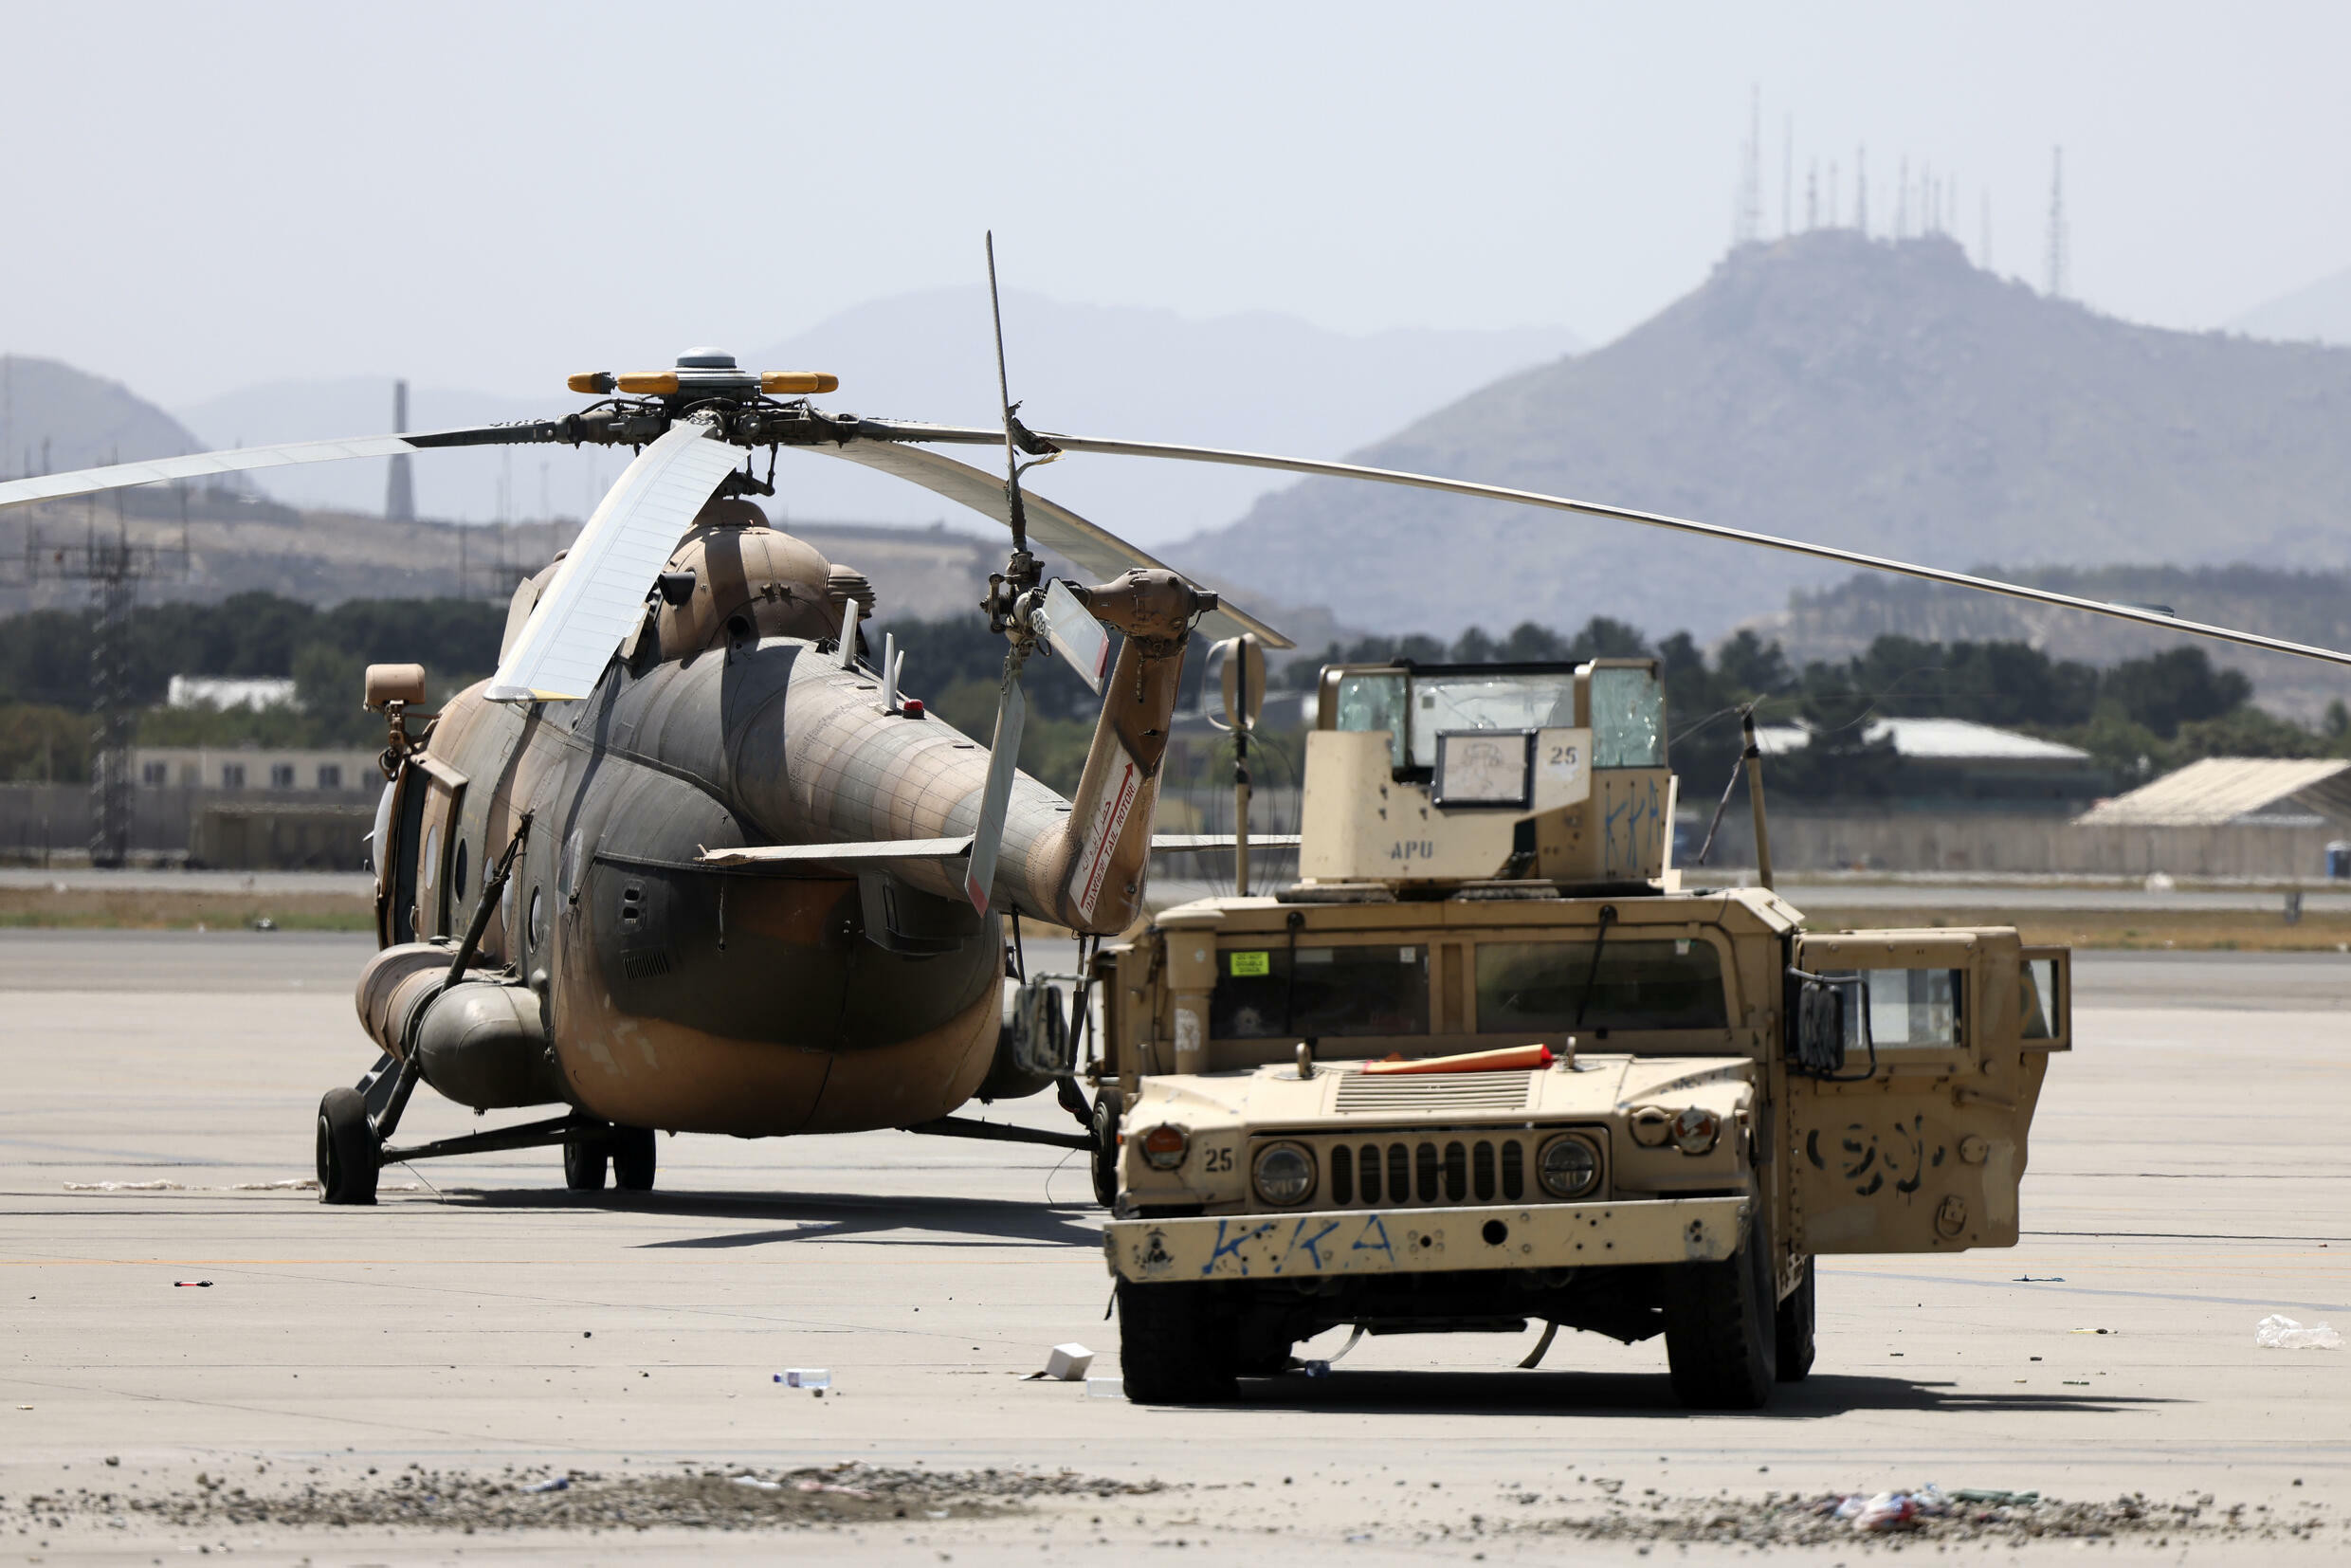 Dozens of damaged planes and vehicles were cordoned off by Taliban barricades